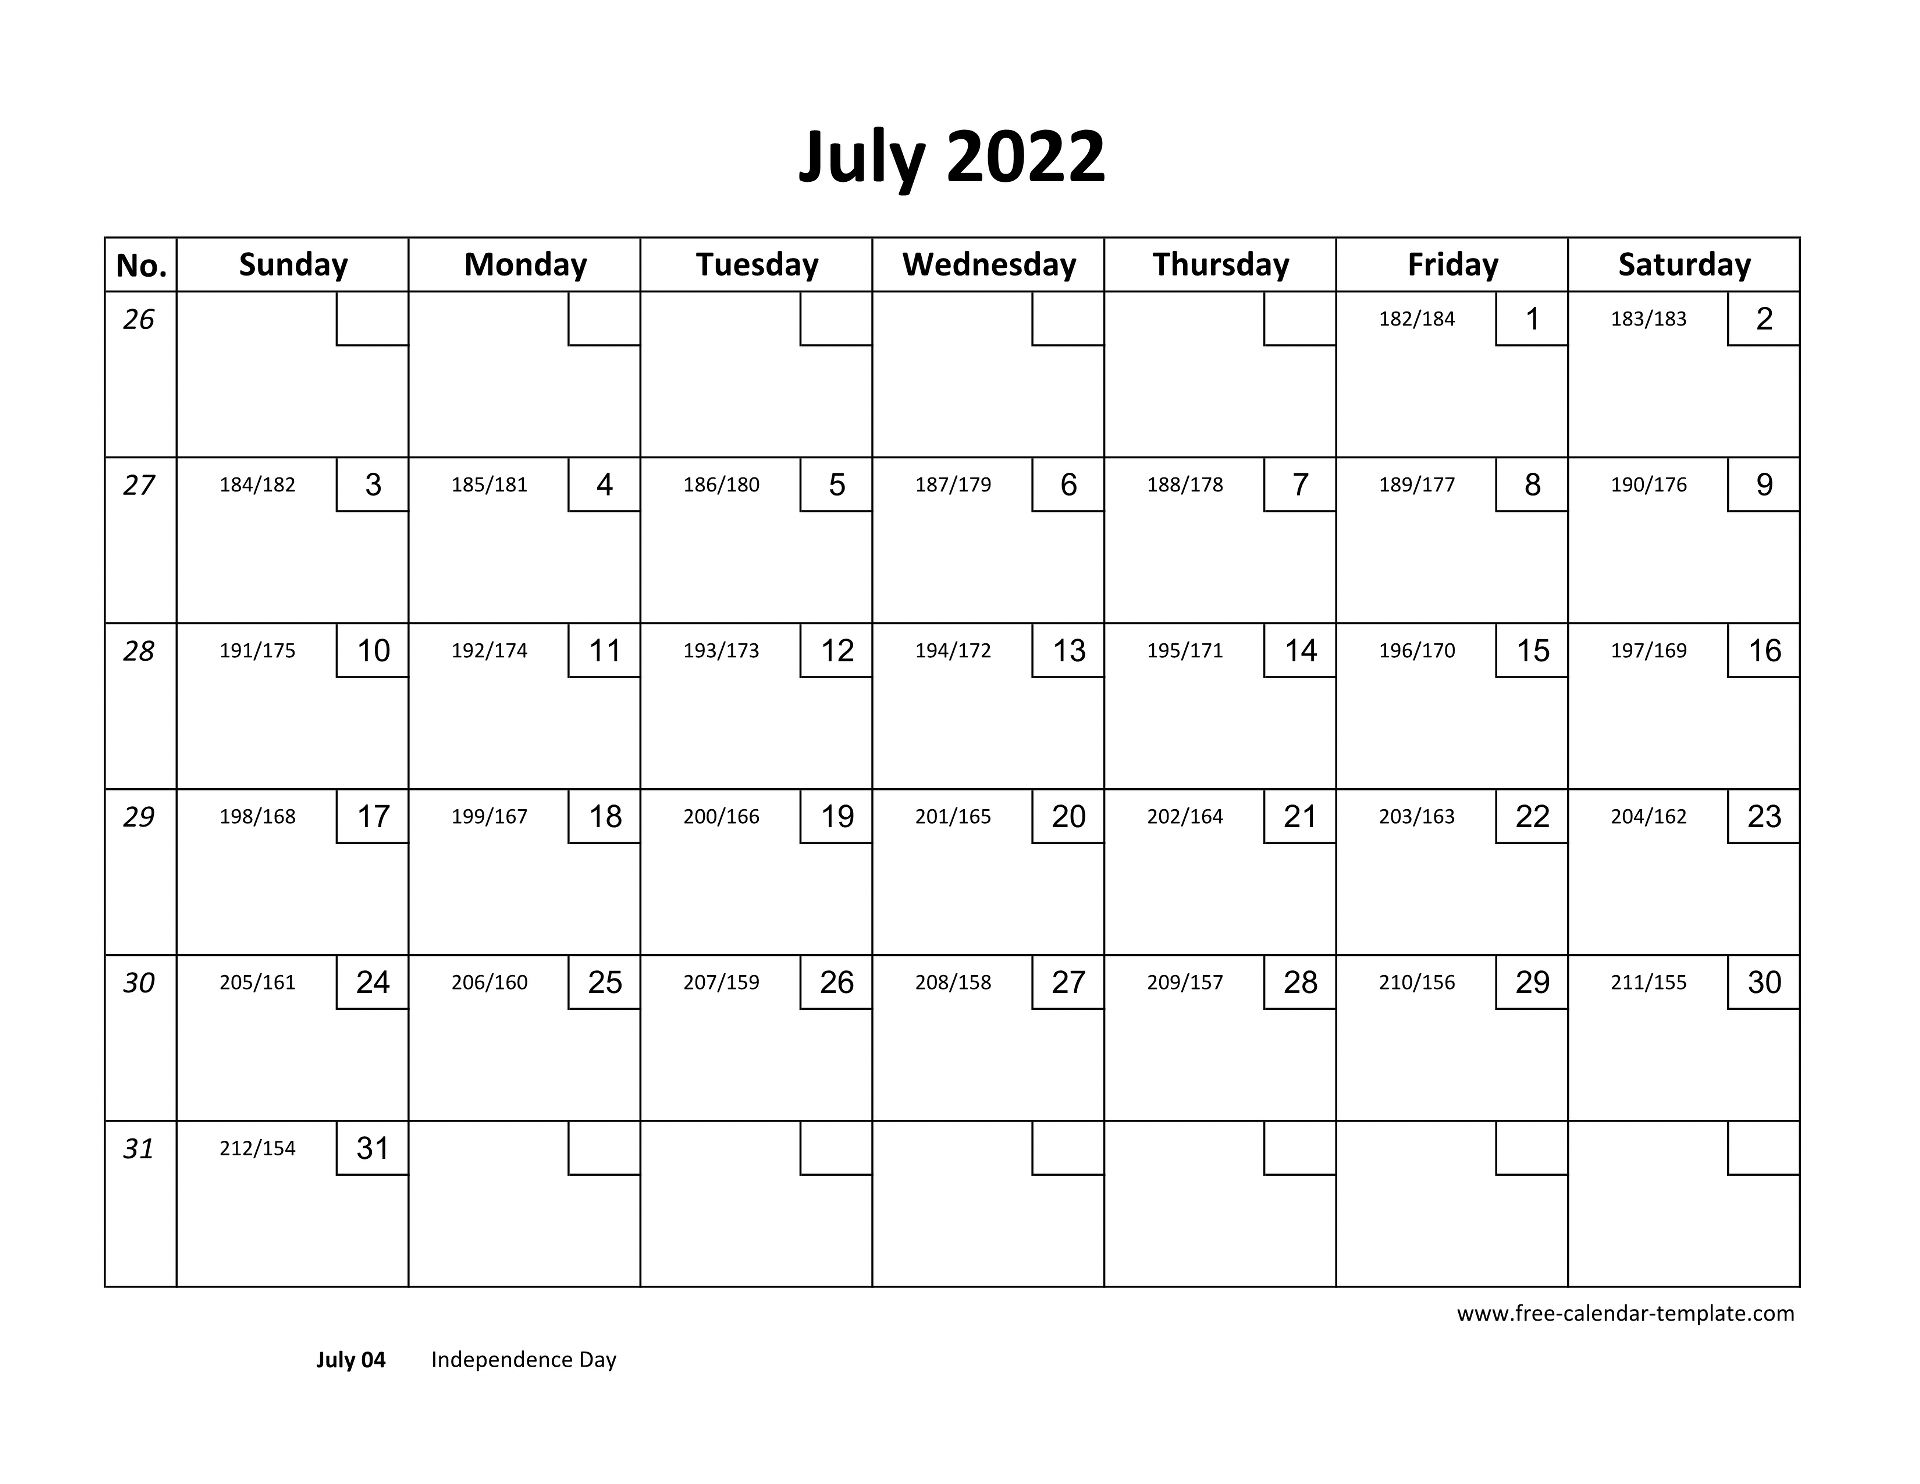 Download a free, printable calendar for 2021 to keep you organized in style. July 2022 Free Calendar Tempplate | Free-calendar-template.com